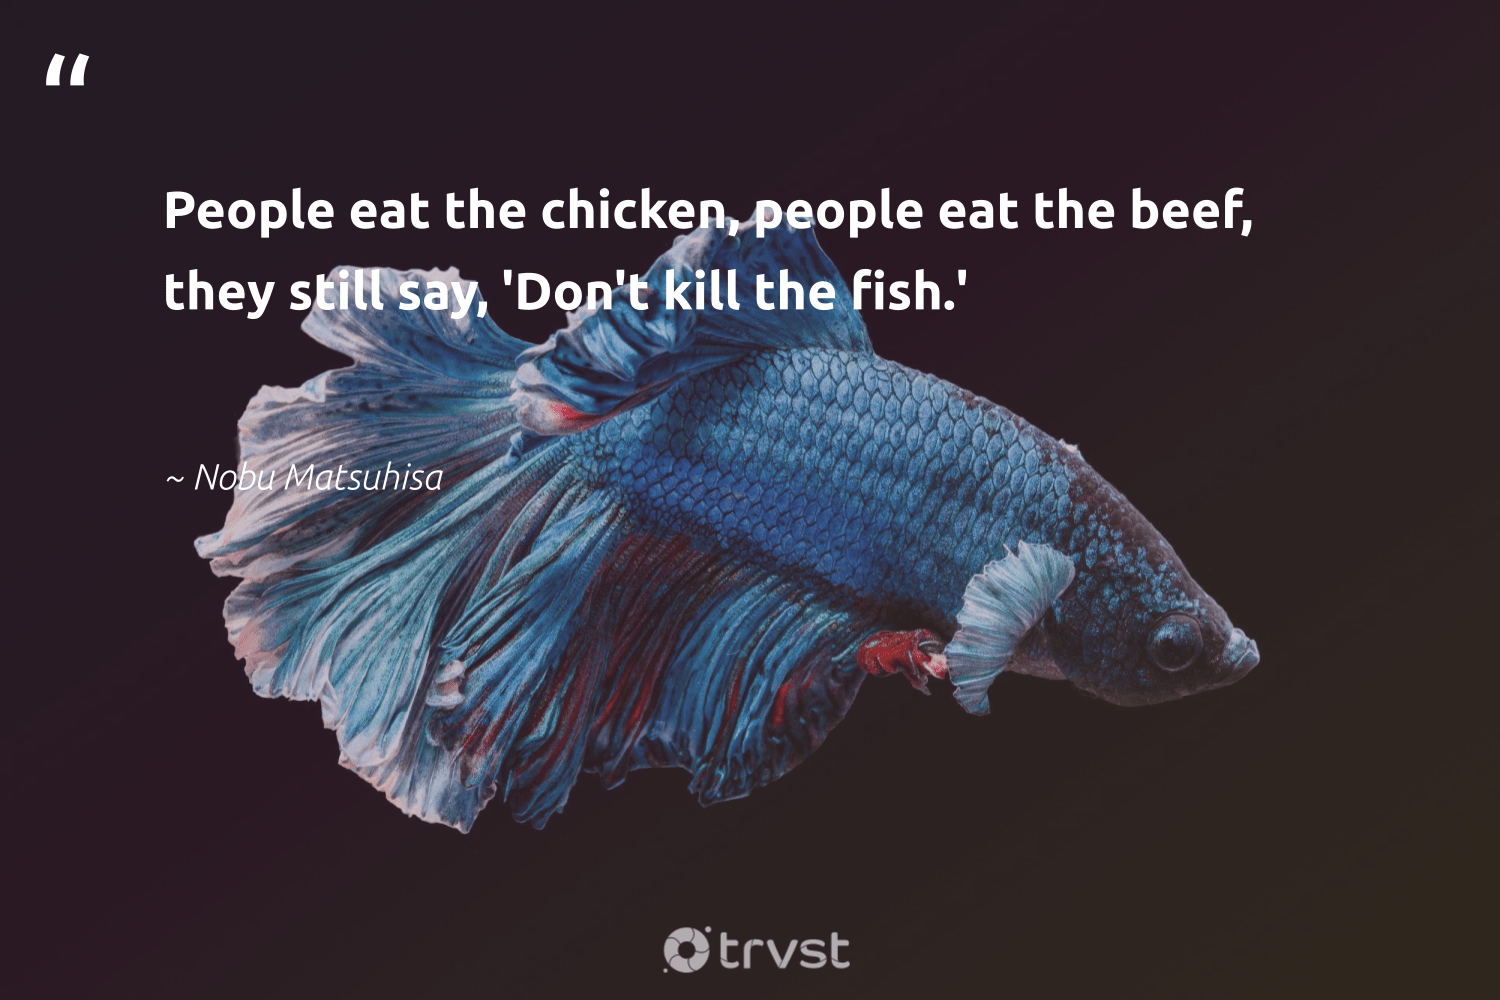 """""""People eat the chicken, people eat the beef, they still say, 'Don't kill the fish.'""""  - Nobu Matsuhisa #trvst #quotes #fish #oceans #dotherightthing #sealife #socialimpact #savetheoceans #dosomething #perfectnature #beinspired #biodiversity"""